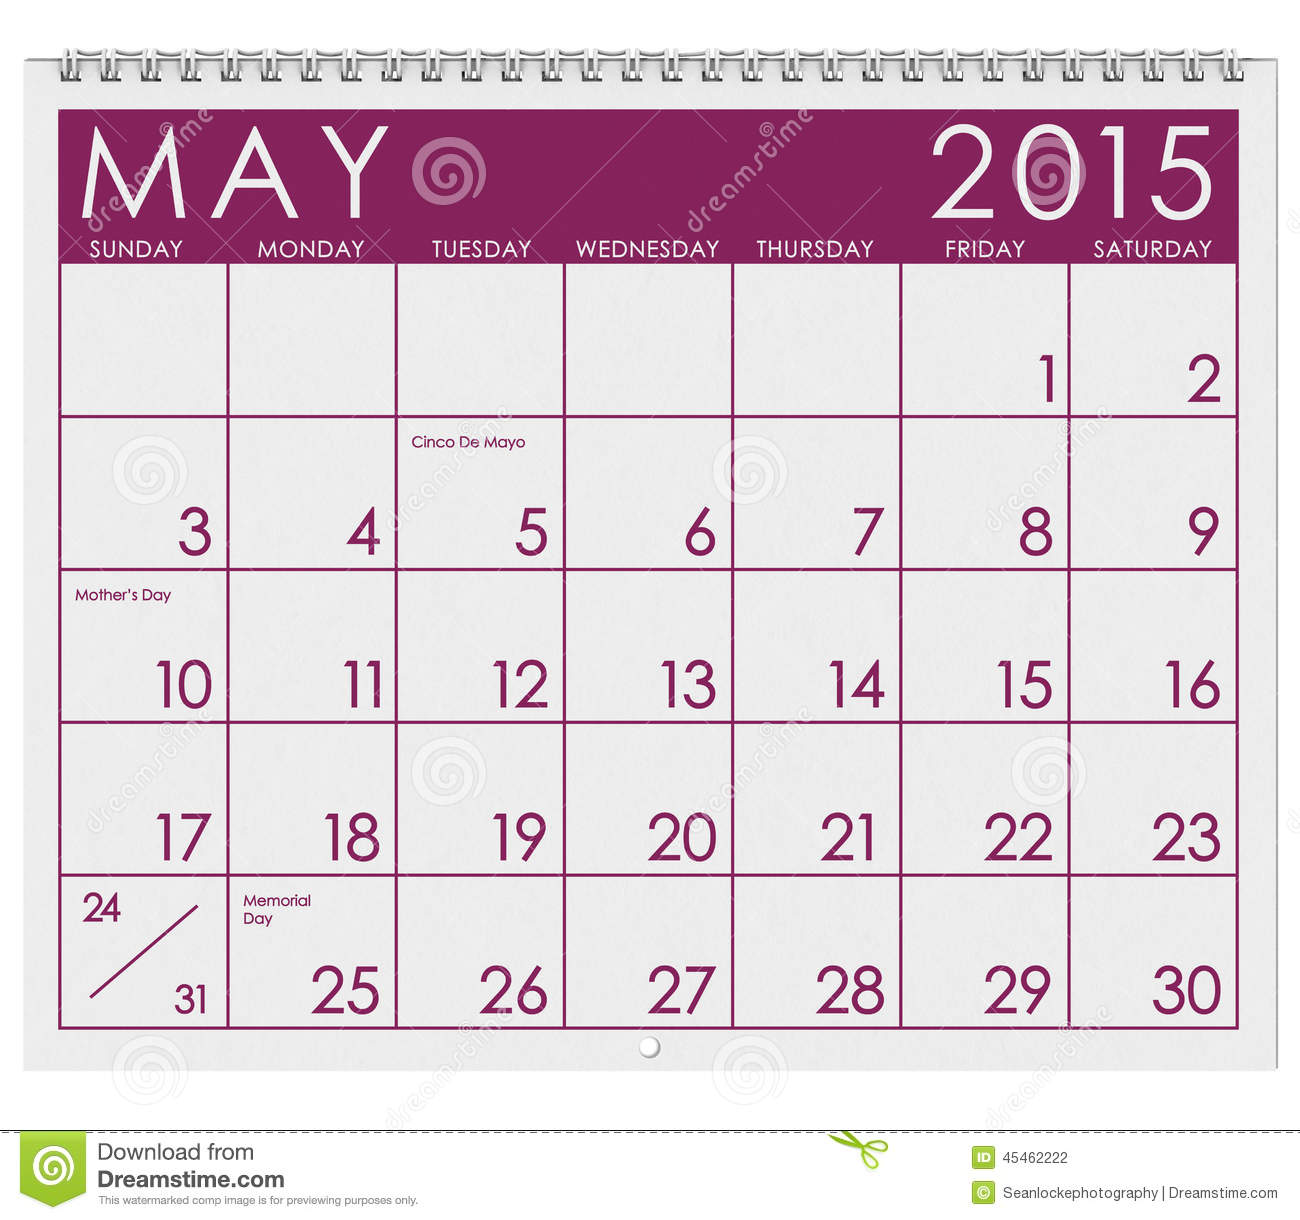 Month Of May Calendar : Month of may new calendar template site